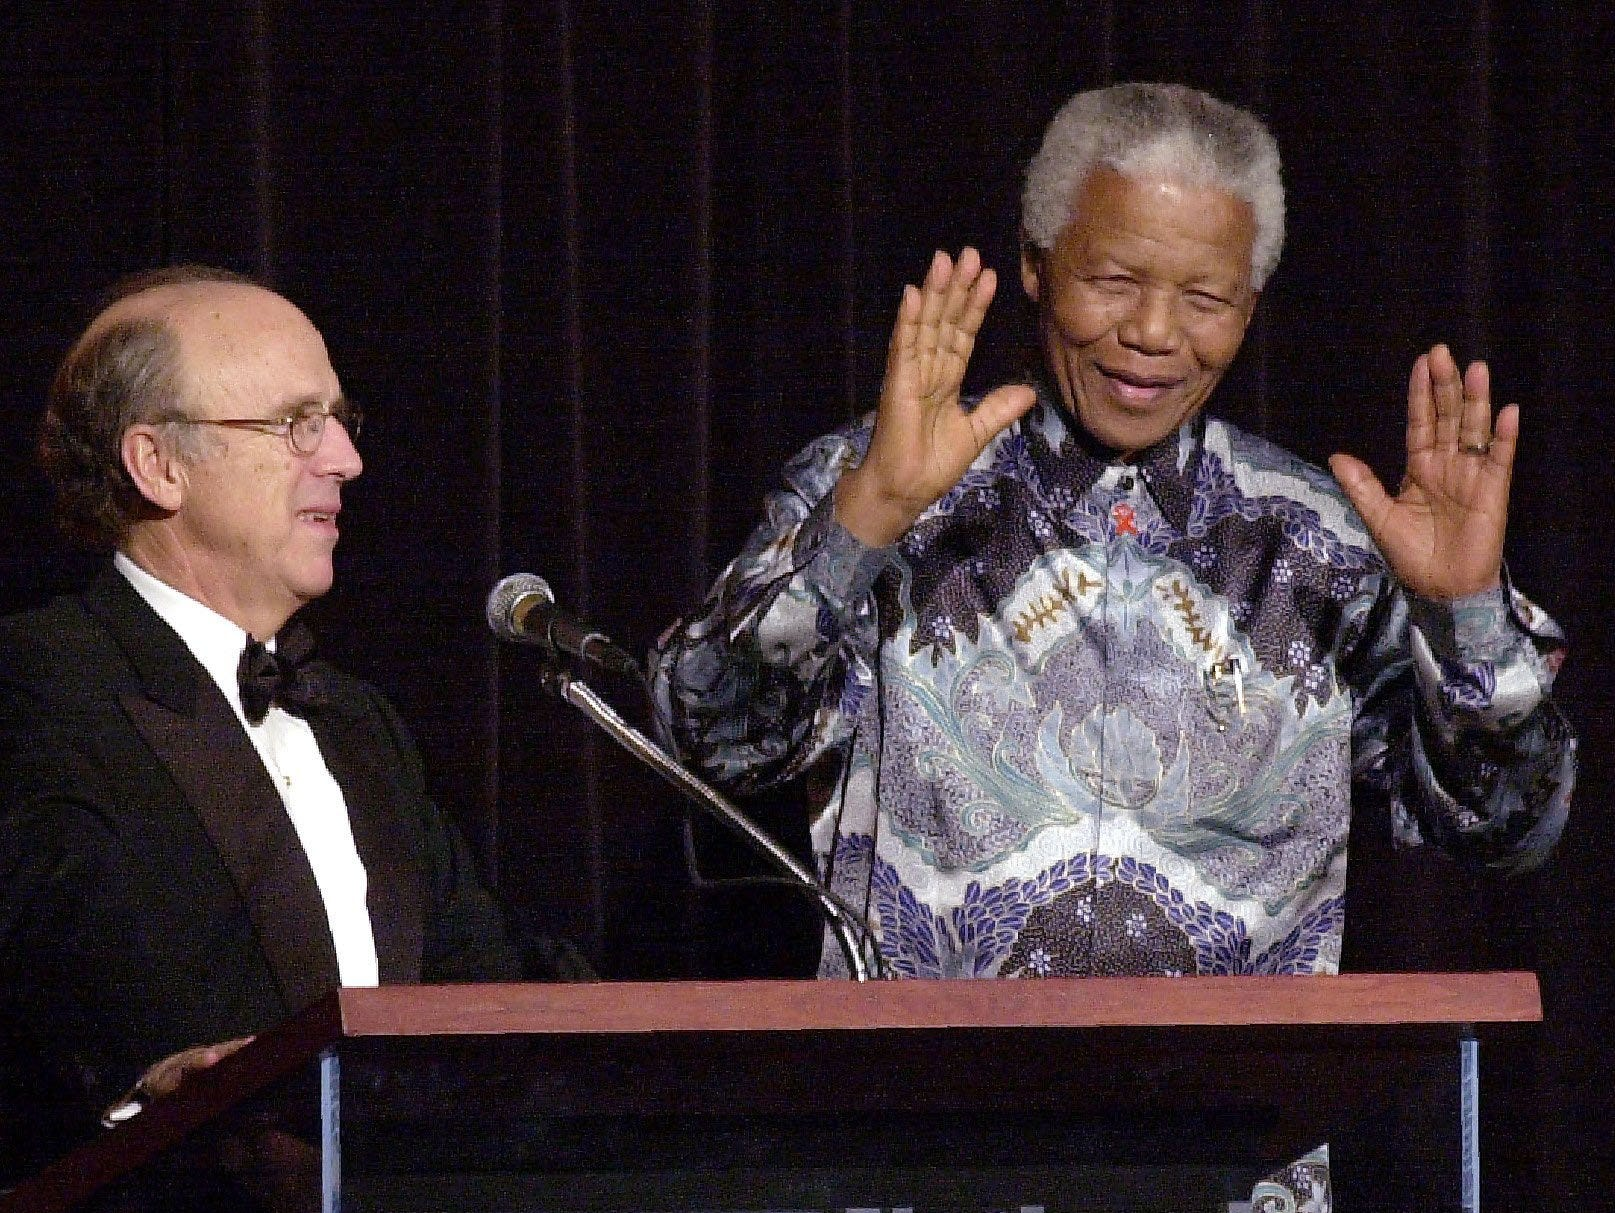 """Former president of South Africa Nelson Mandela, right, raises his hands to a standing ovation at The Peabody on Nov. 21, 2000, as he receives the National Civil Rights Museum's International Freedom Award. Looking on is AutoZone founder J.R. """"Pitt"""" Hyde."""